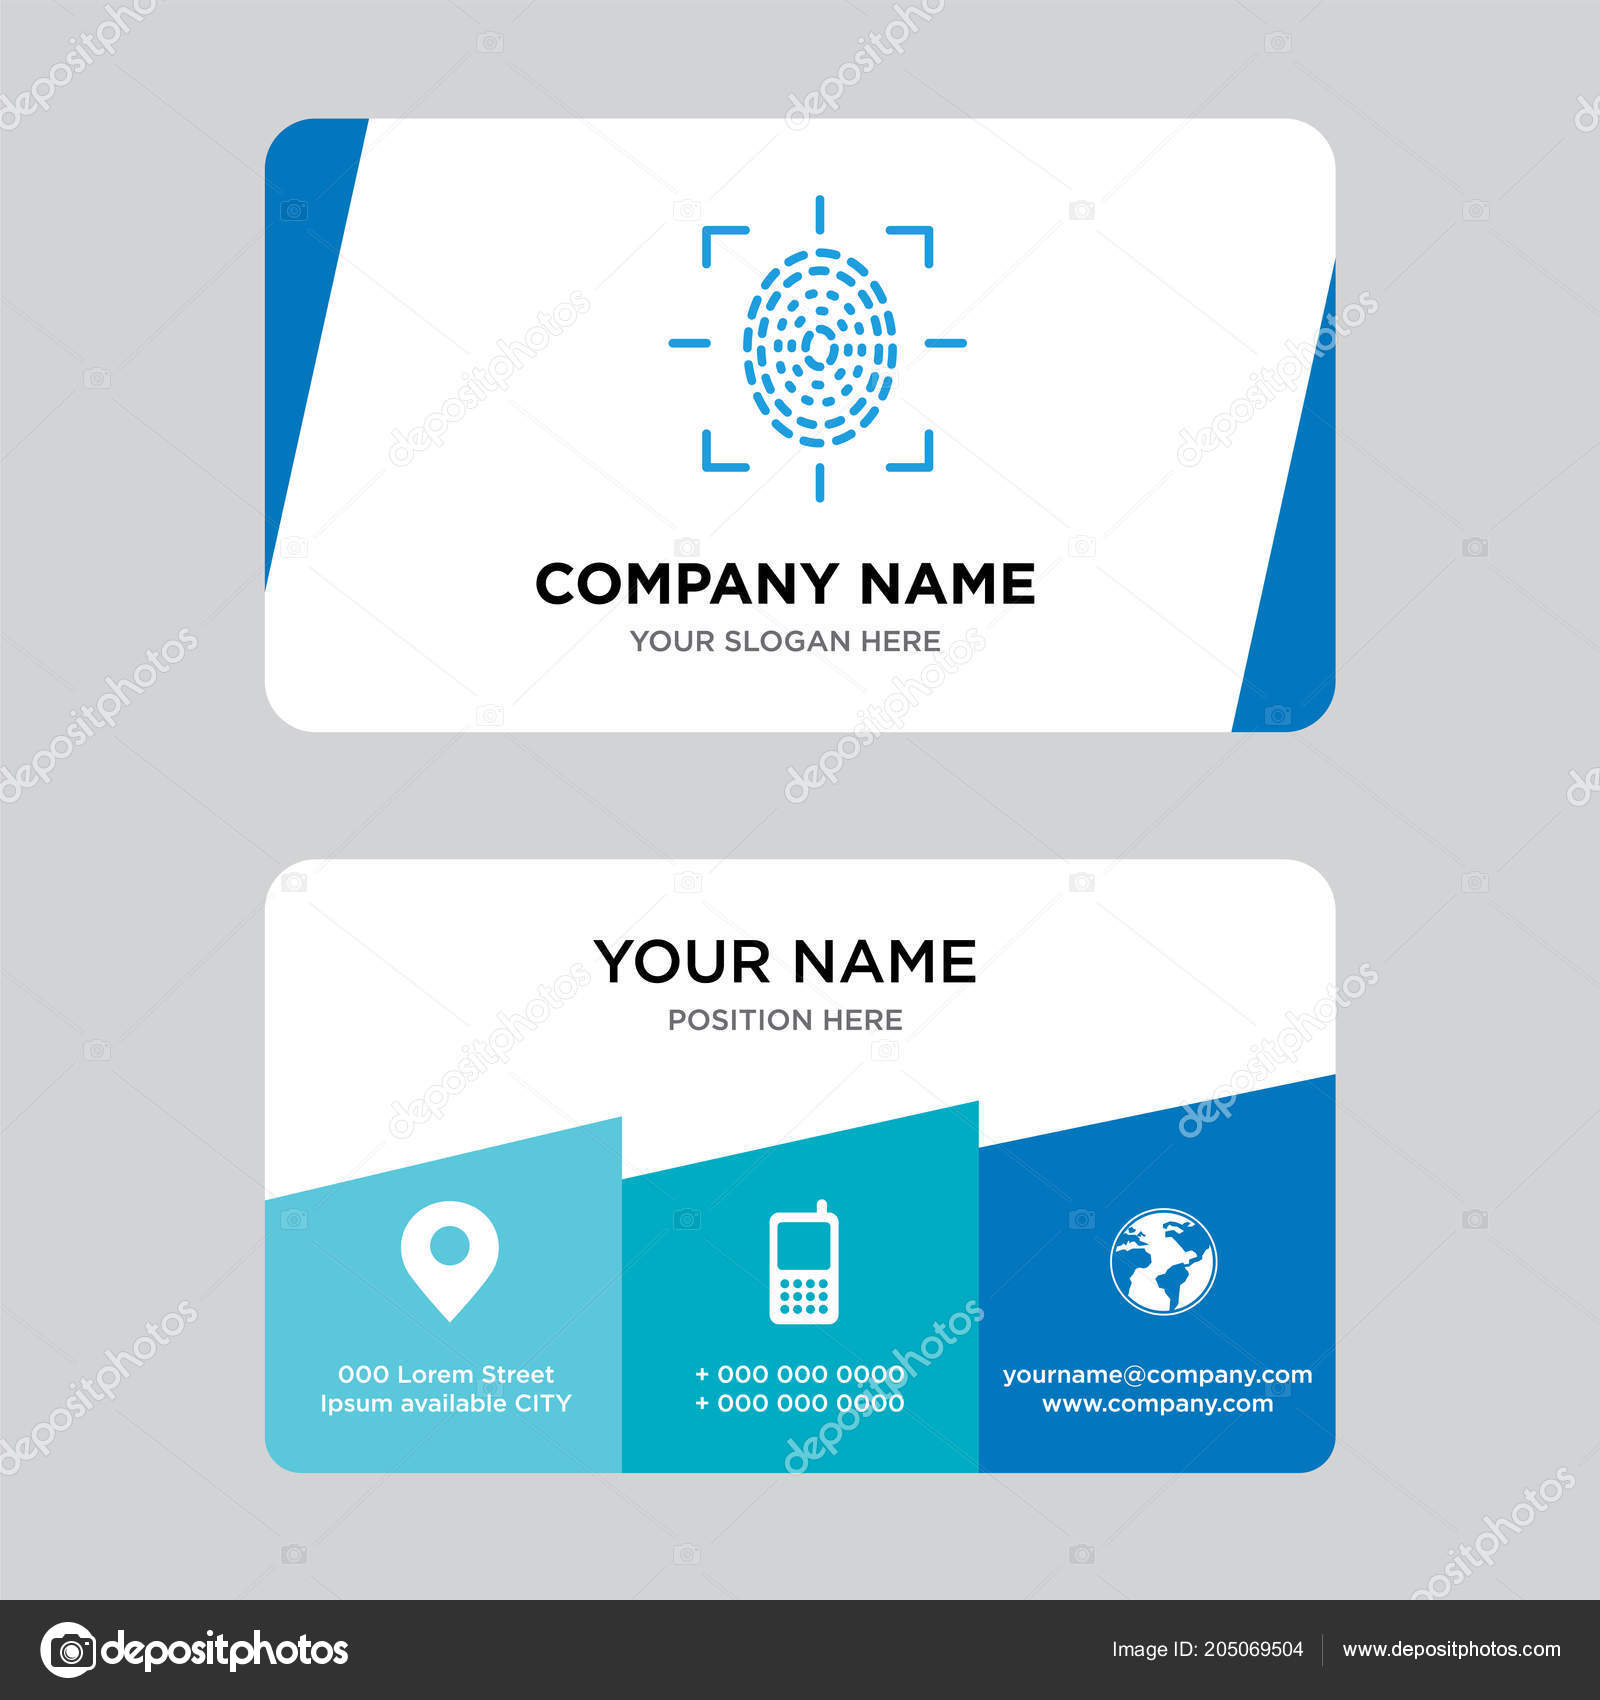 Fingerprint scan business card design template visiting your company fingerprint scan business card design template visiting your company modern stock photo reheart Image collections